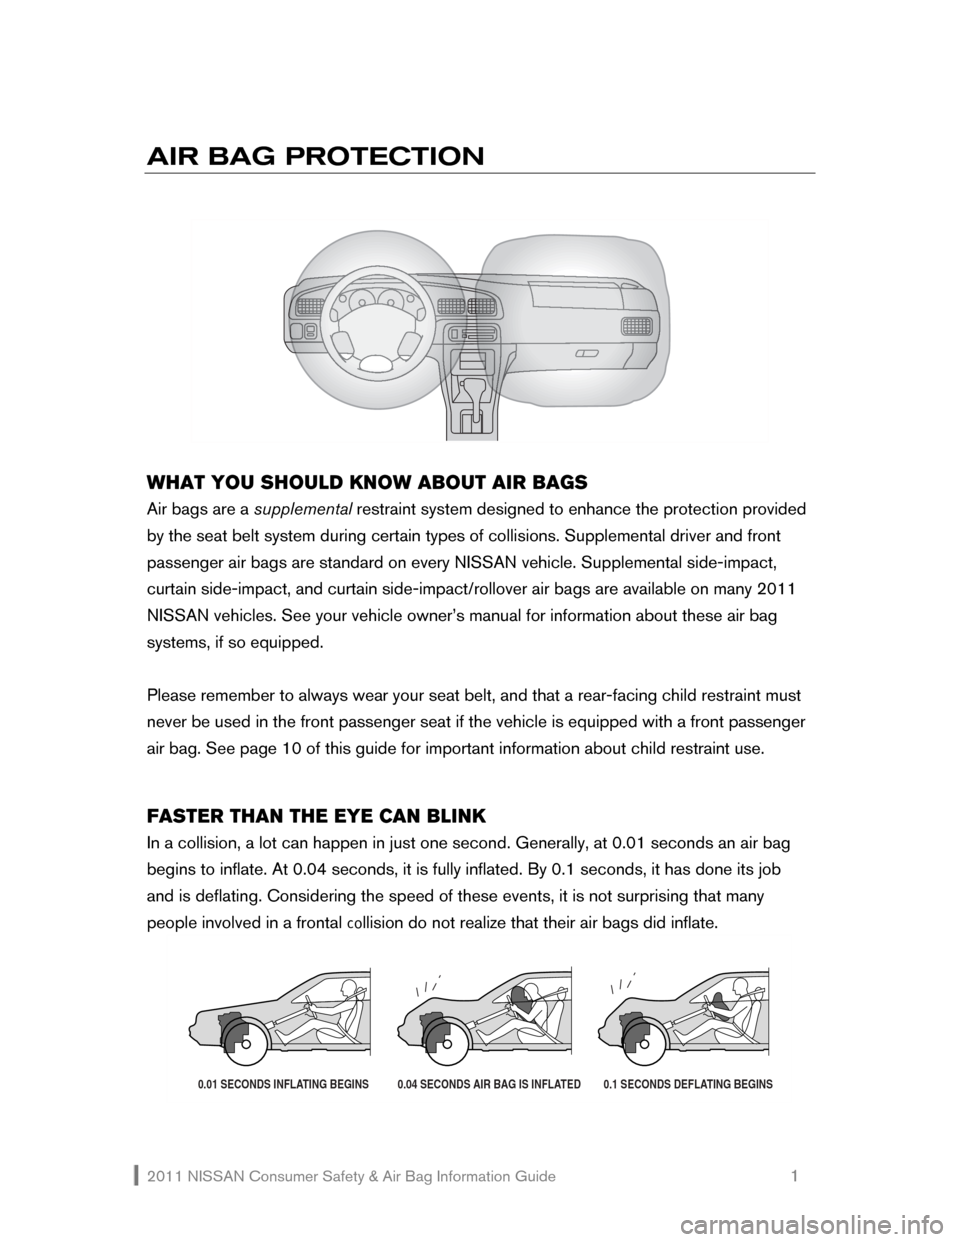 NISSAN VERSA 2011 1.G Consumer Safety Air Bag Information Guide, Page 2